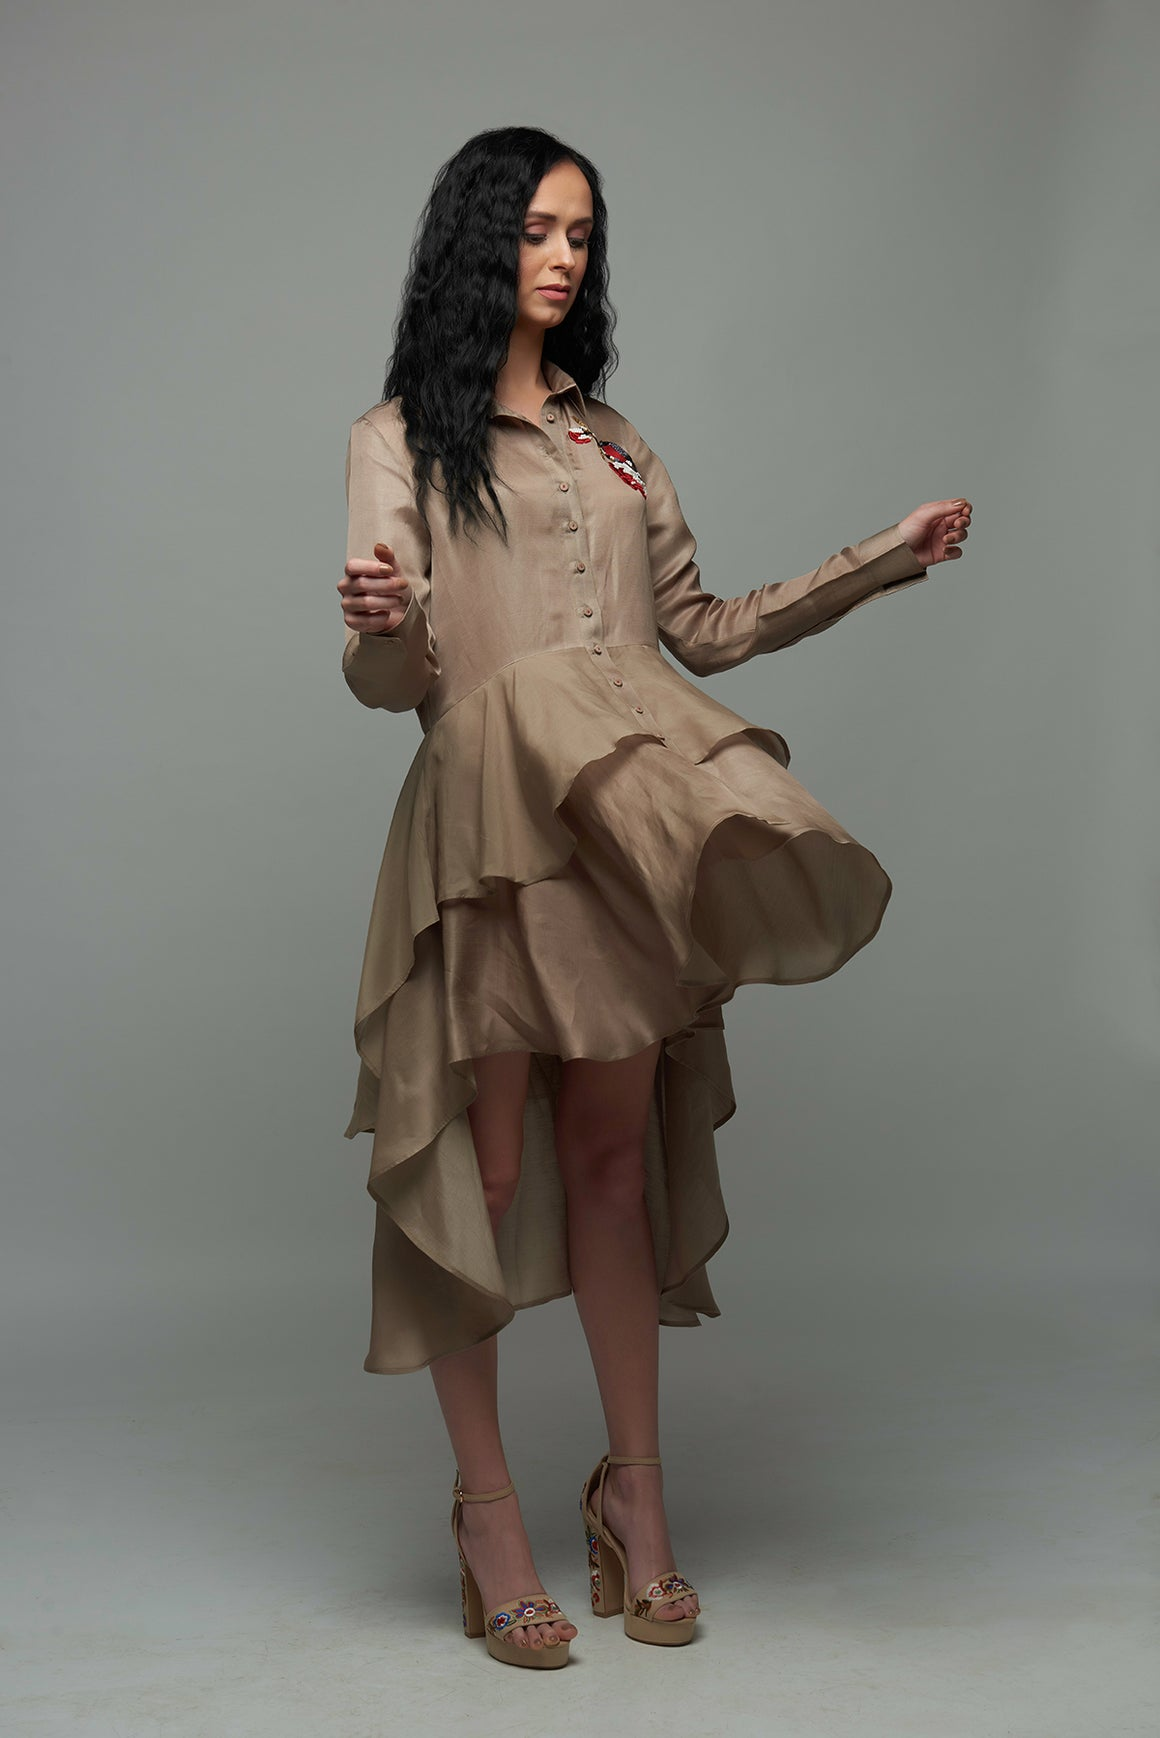 The Perched - Clothcrafte, Dress